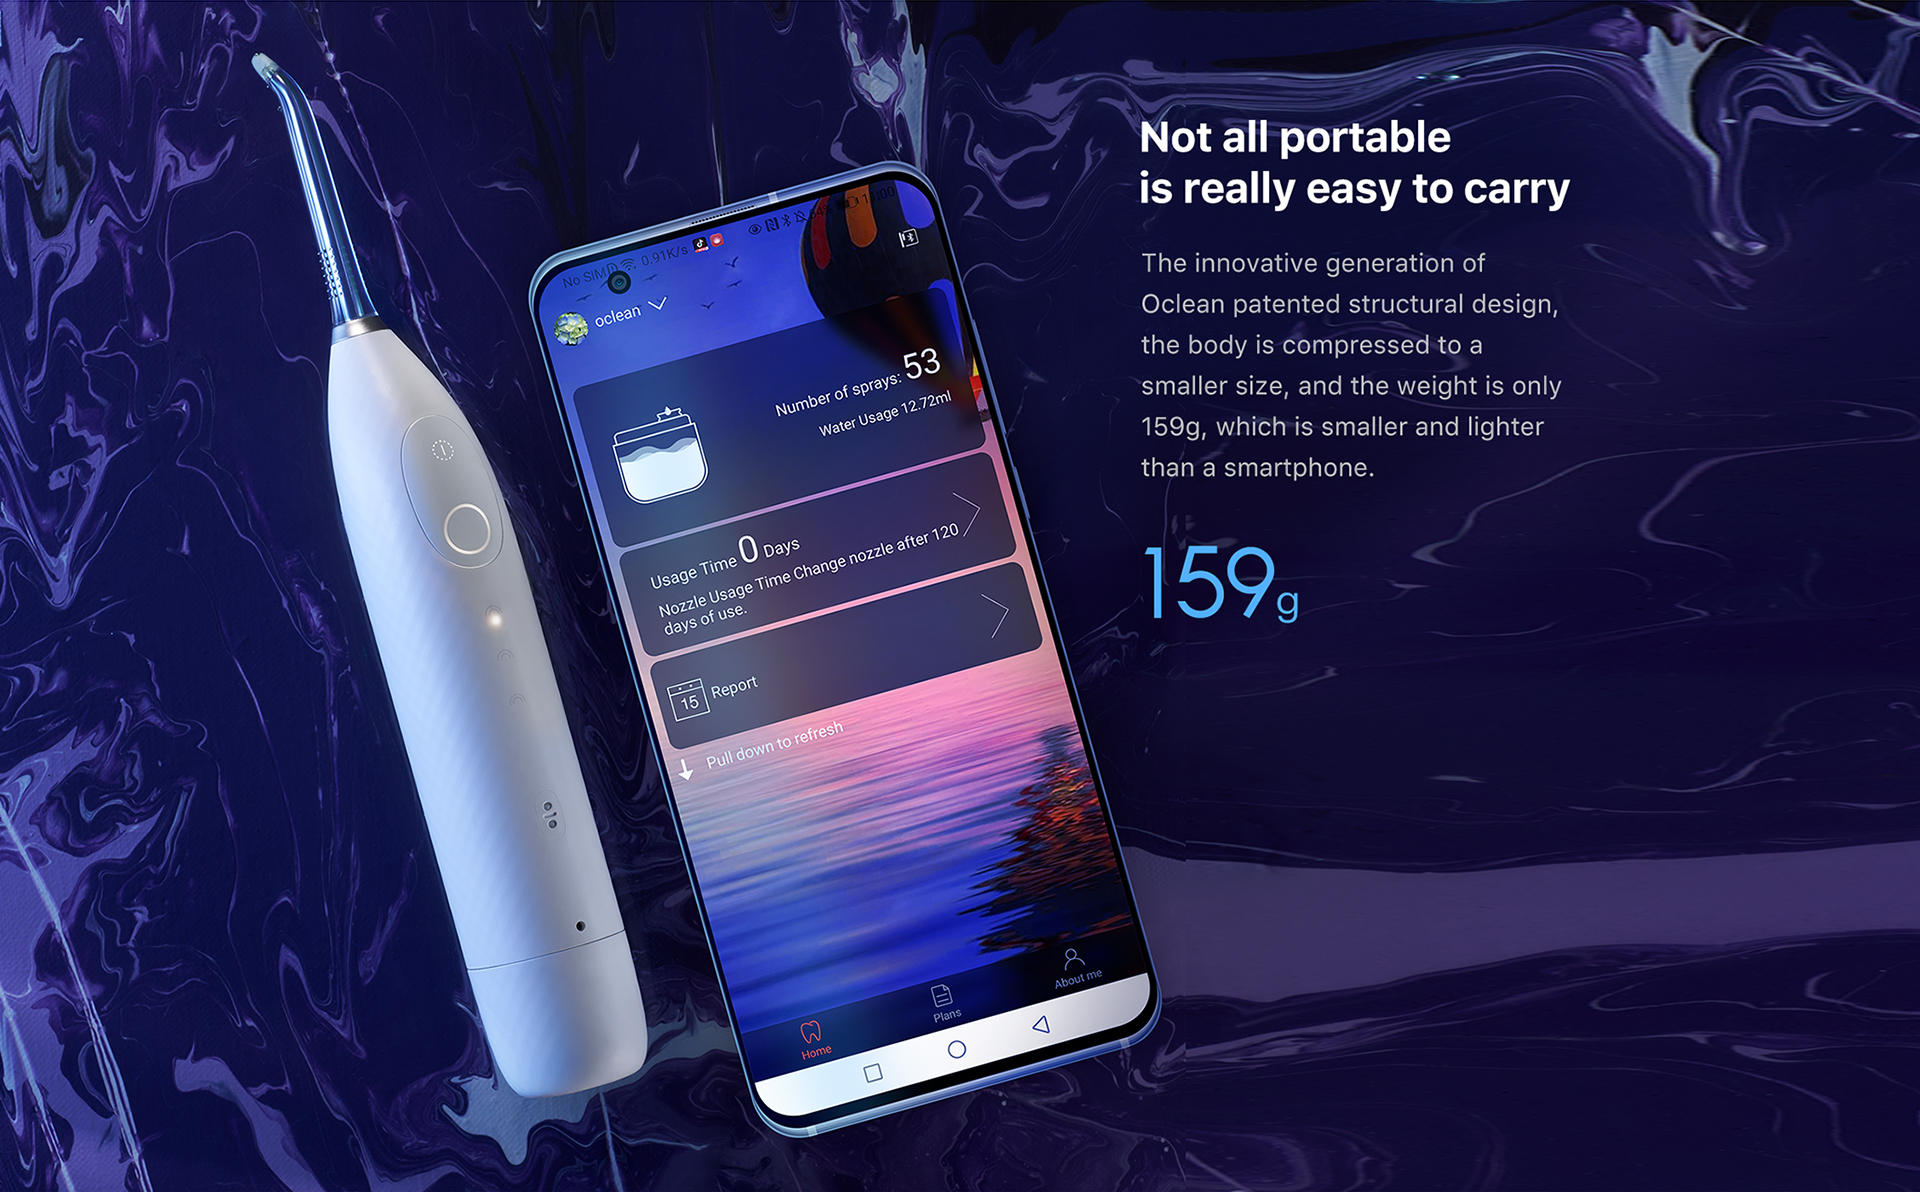 innovative generation of Oclean patented structural design,the body is compressed to a smaller size,and the weight is only 159g,which is samller and lighter than a smartphone